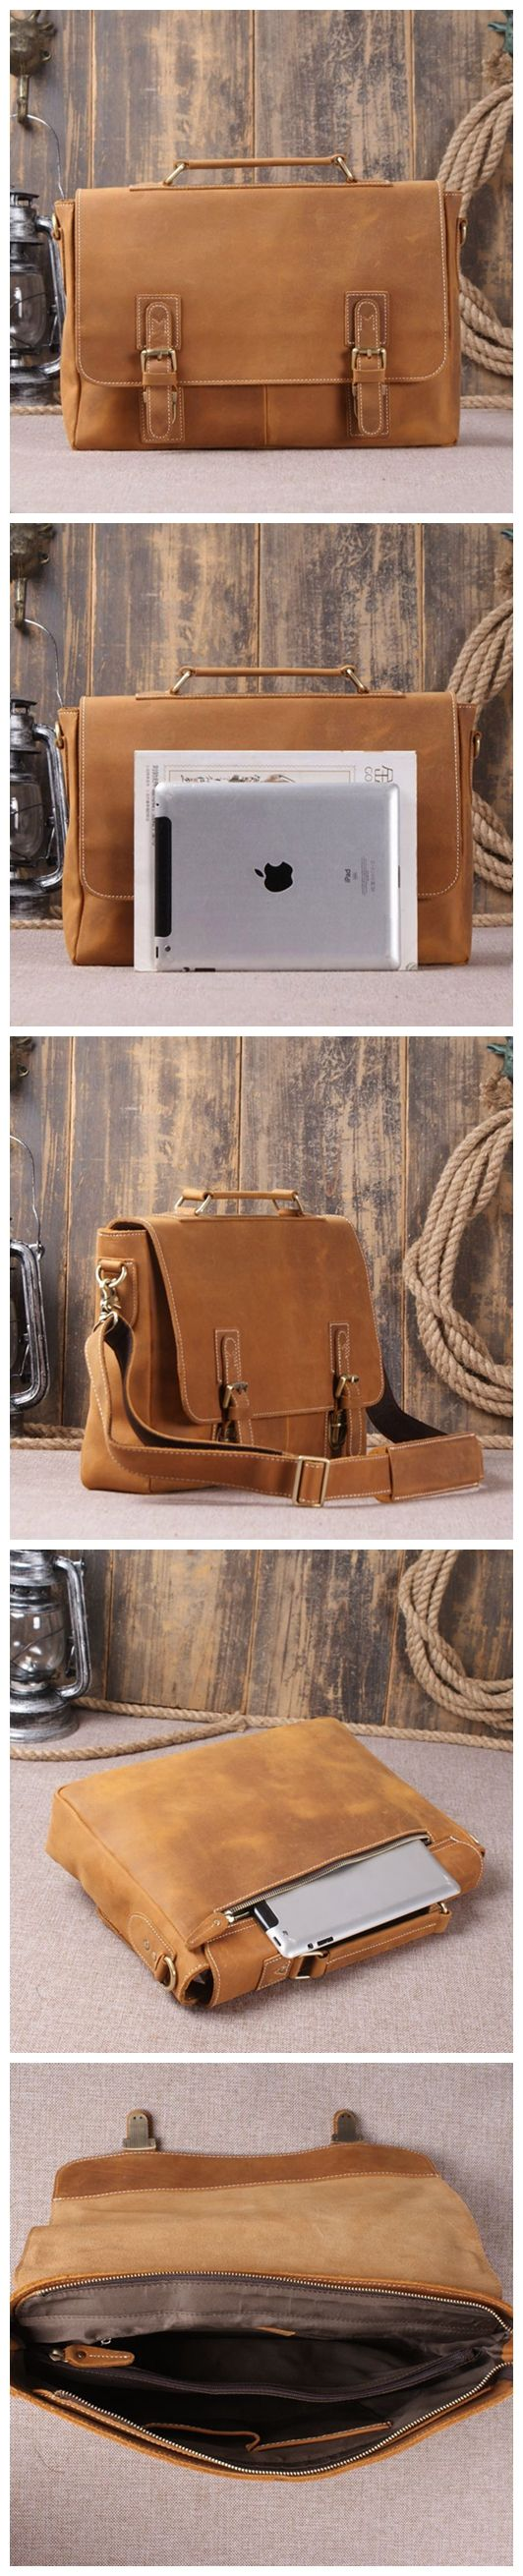 Vintage Retro Look Genuine Leather Laptop Shoulder Bag Leather Messenger Bag Leather Bag Leather Goods For Men Handmade Leather Gifts